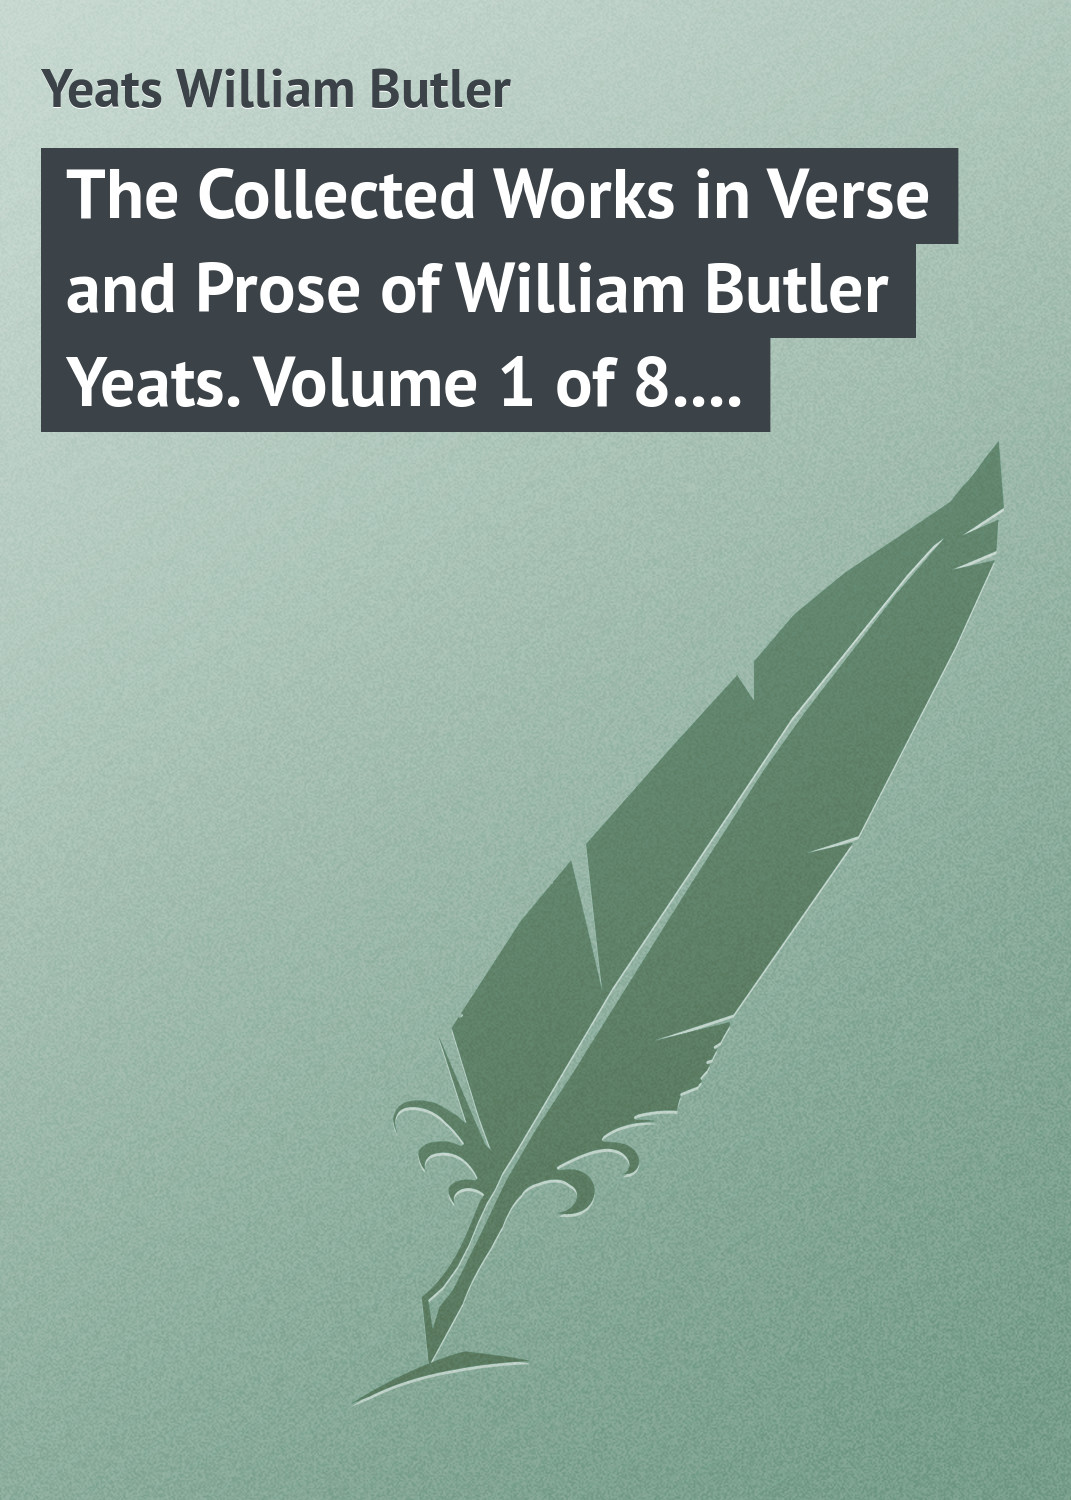 William Butler Yeats The Collected Works in Verse and Prose of William Butler Yeats. Volume 1 of 8. Poems Lyrical and Narrative